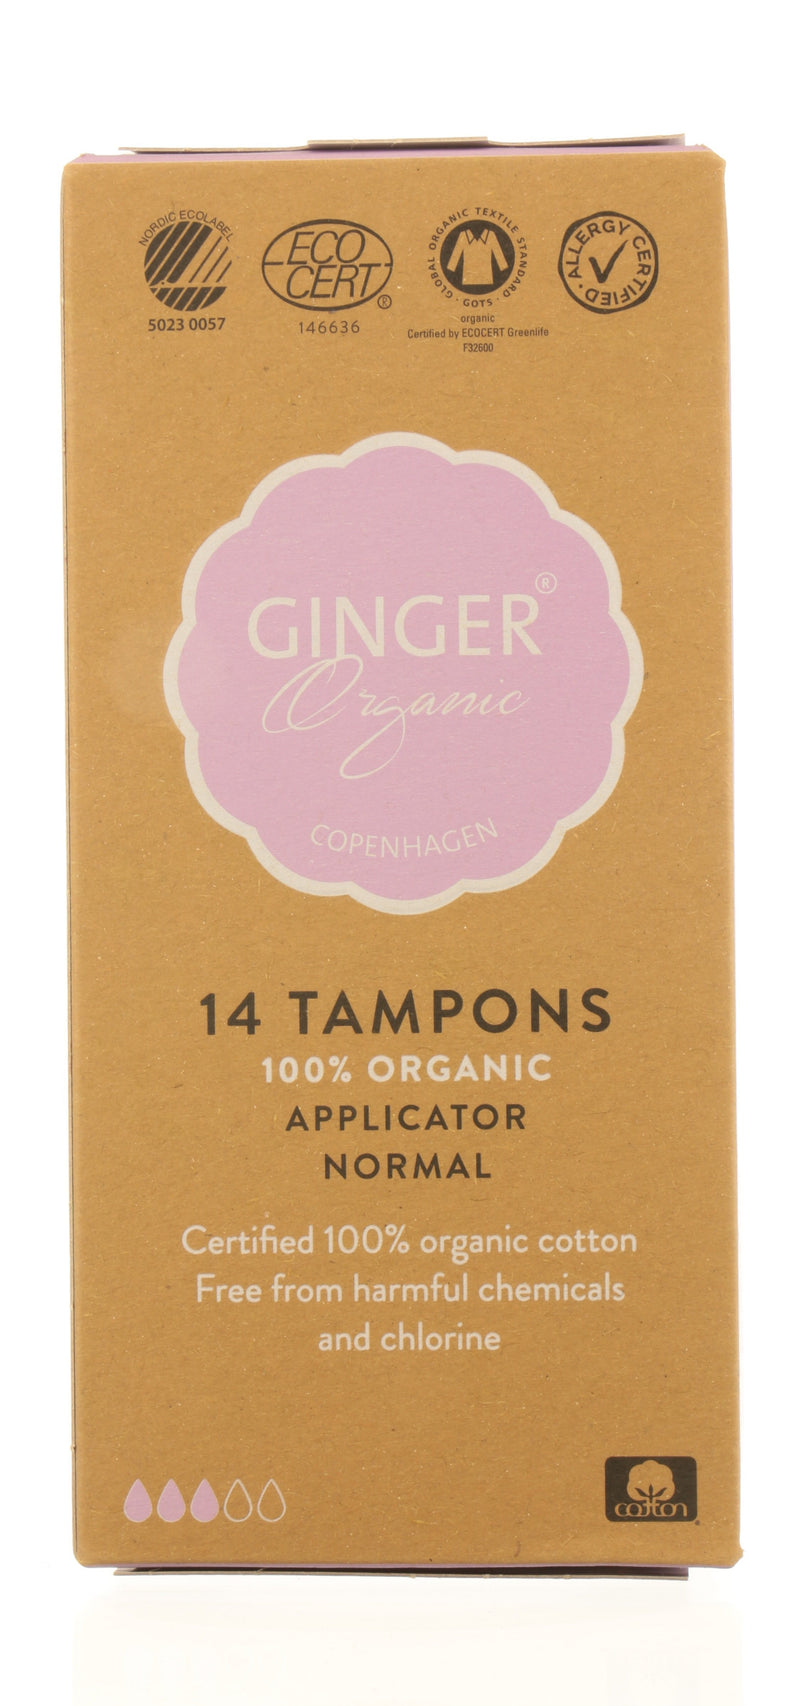 GINGER ORGANIC Tampons with applicator- Normal